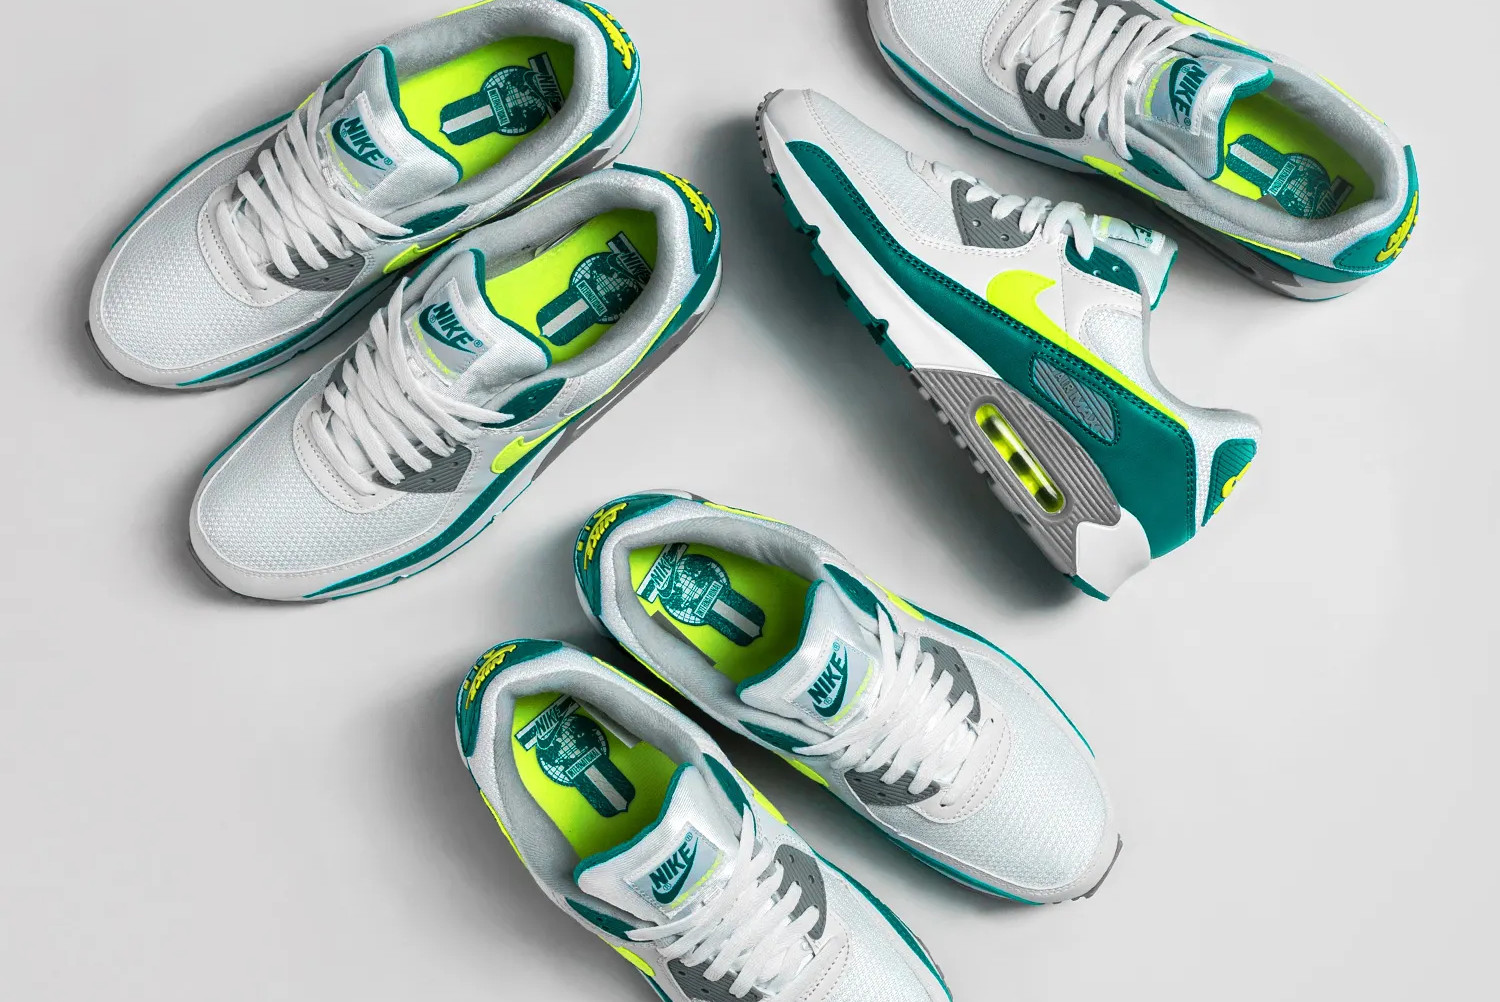 nike air max 90 spruce lime on white